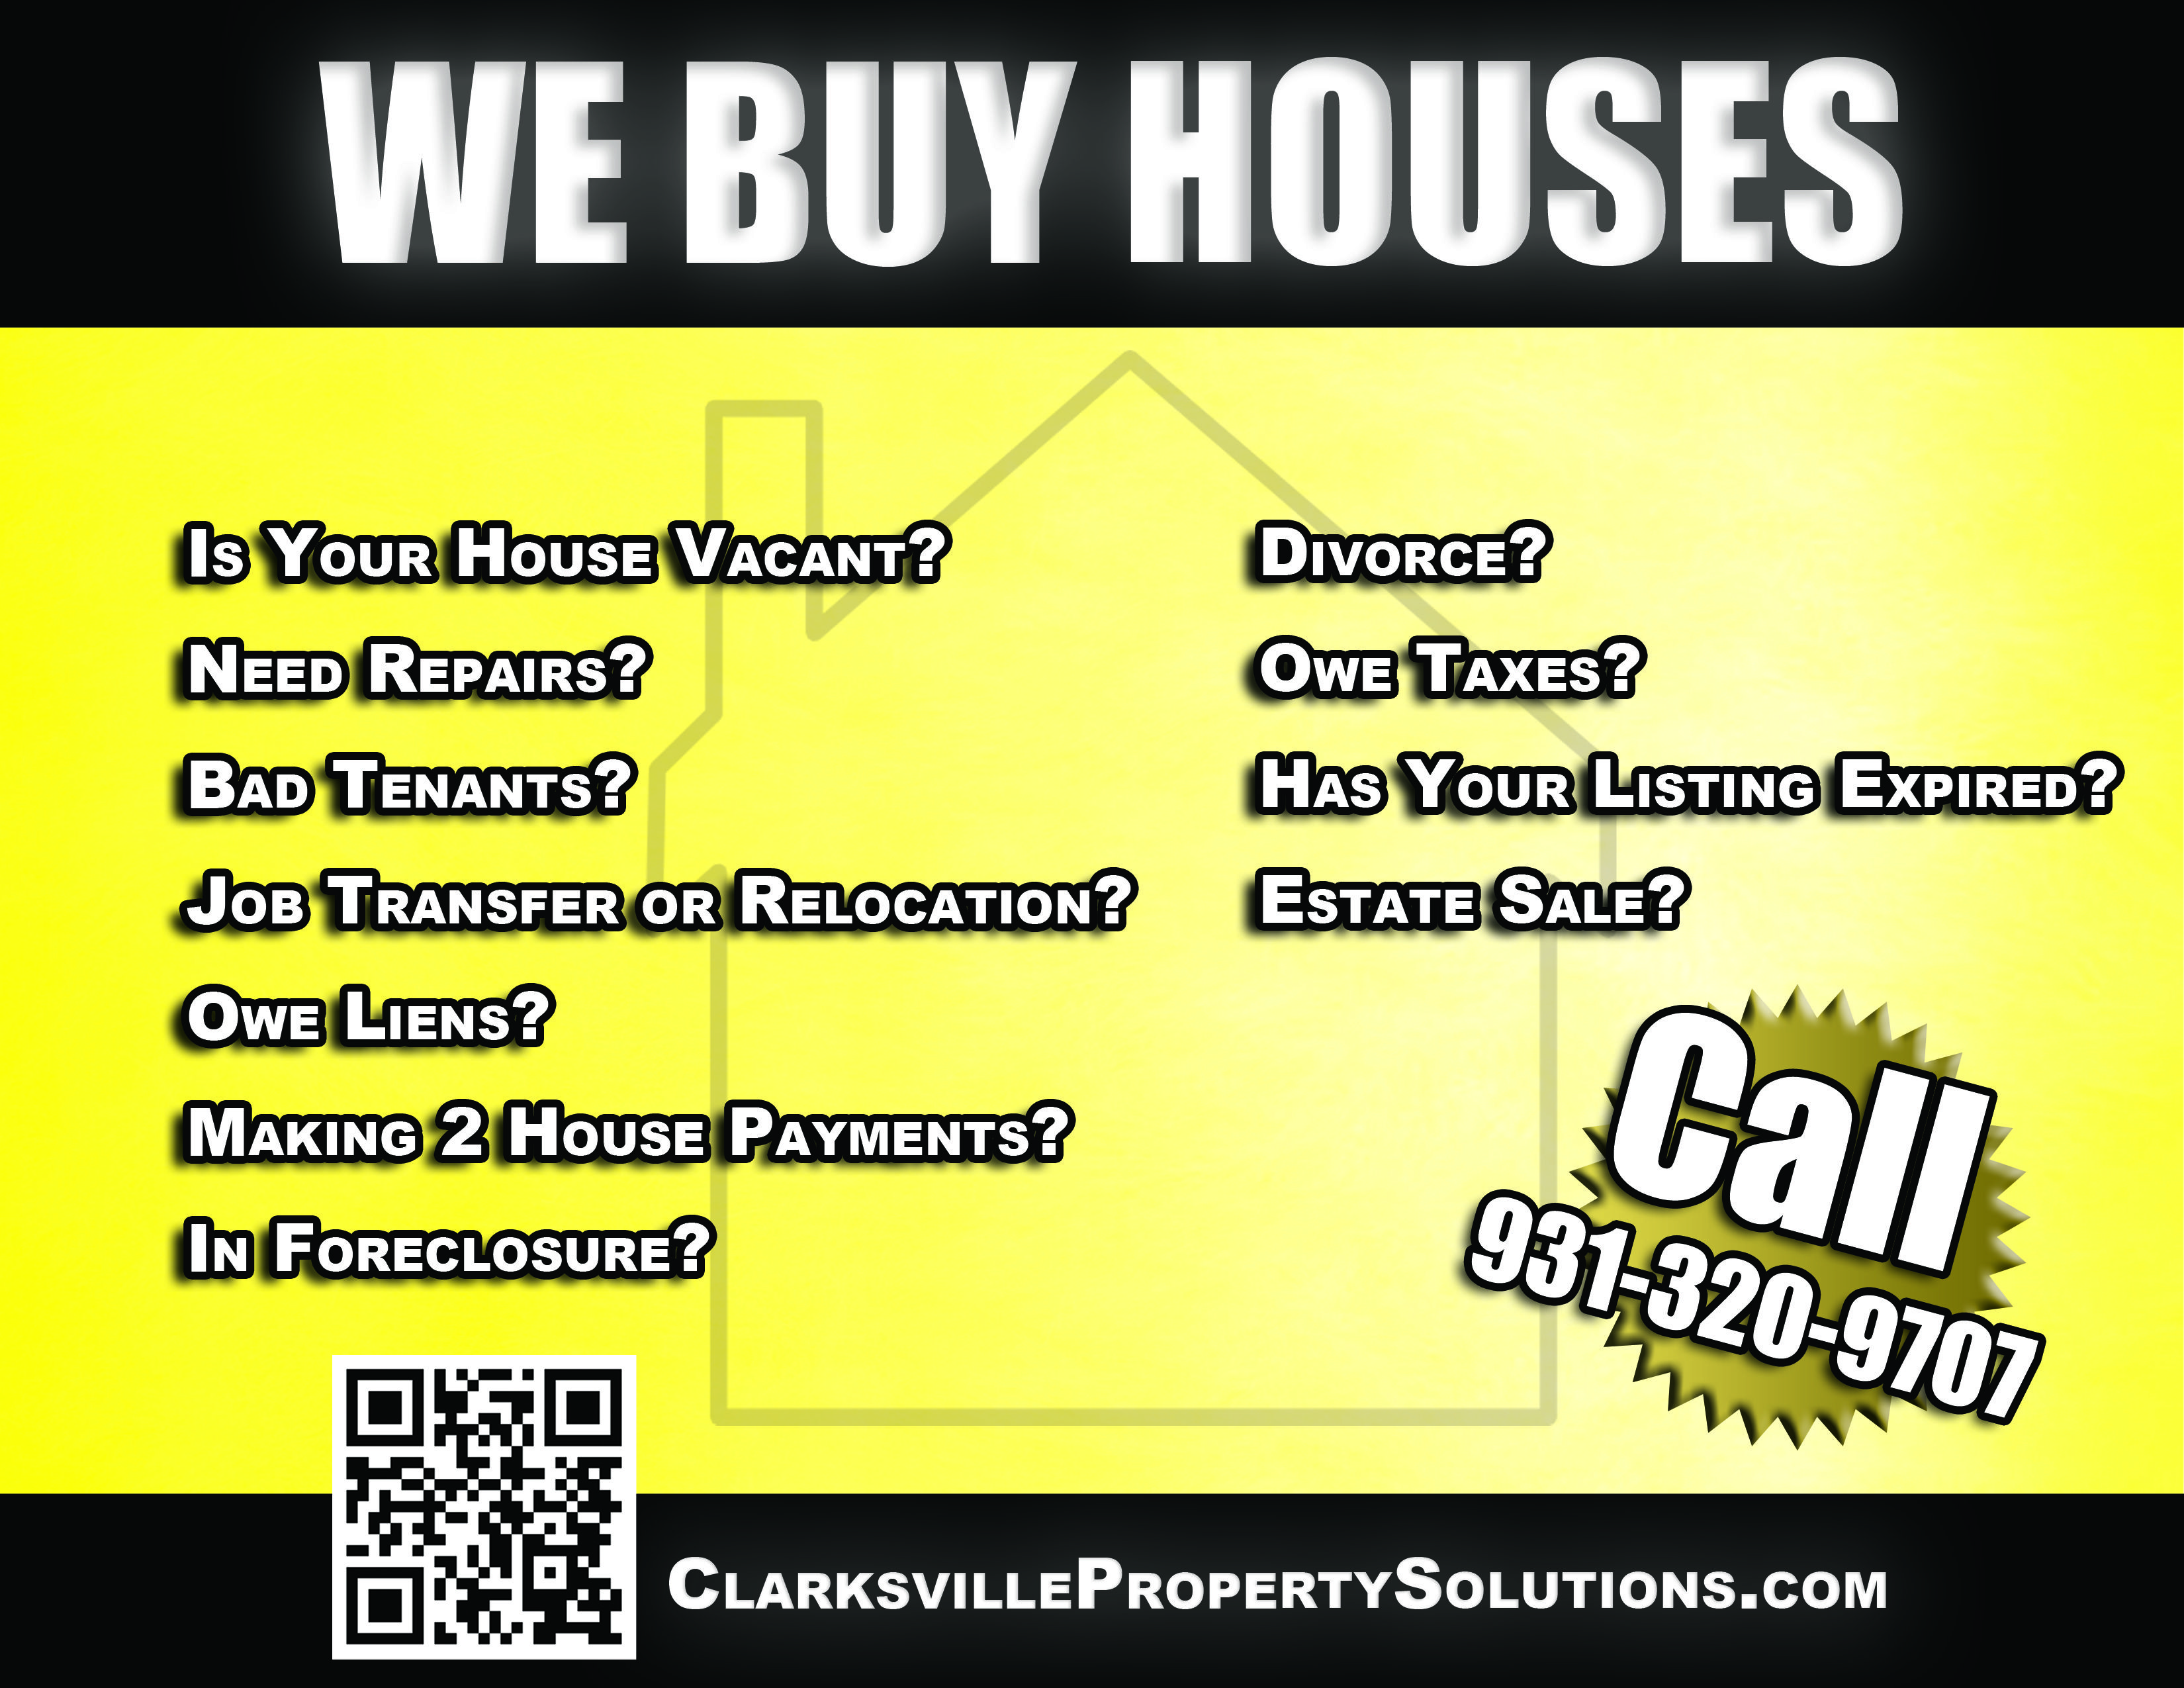 We Buy Houses Advertisement Clarksville Property Solutions LLC